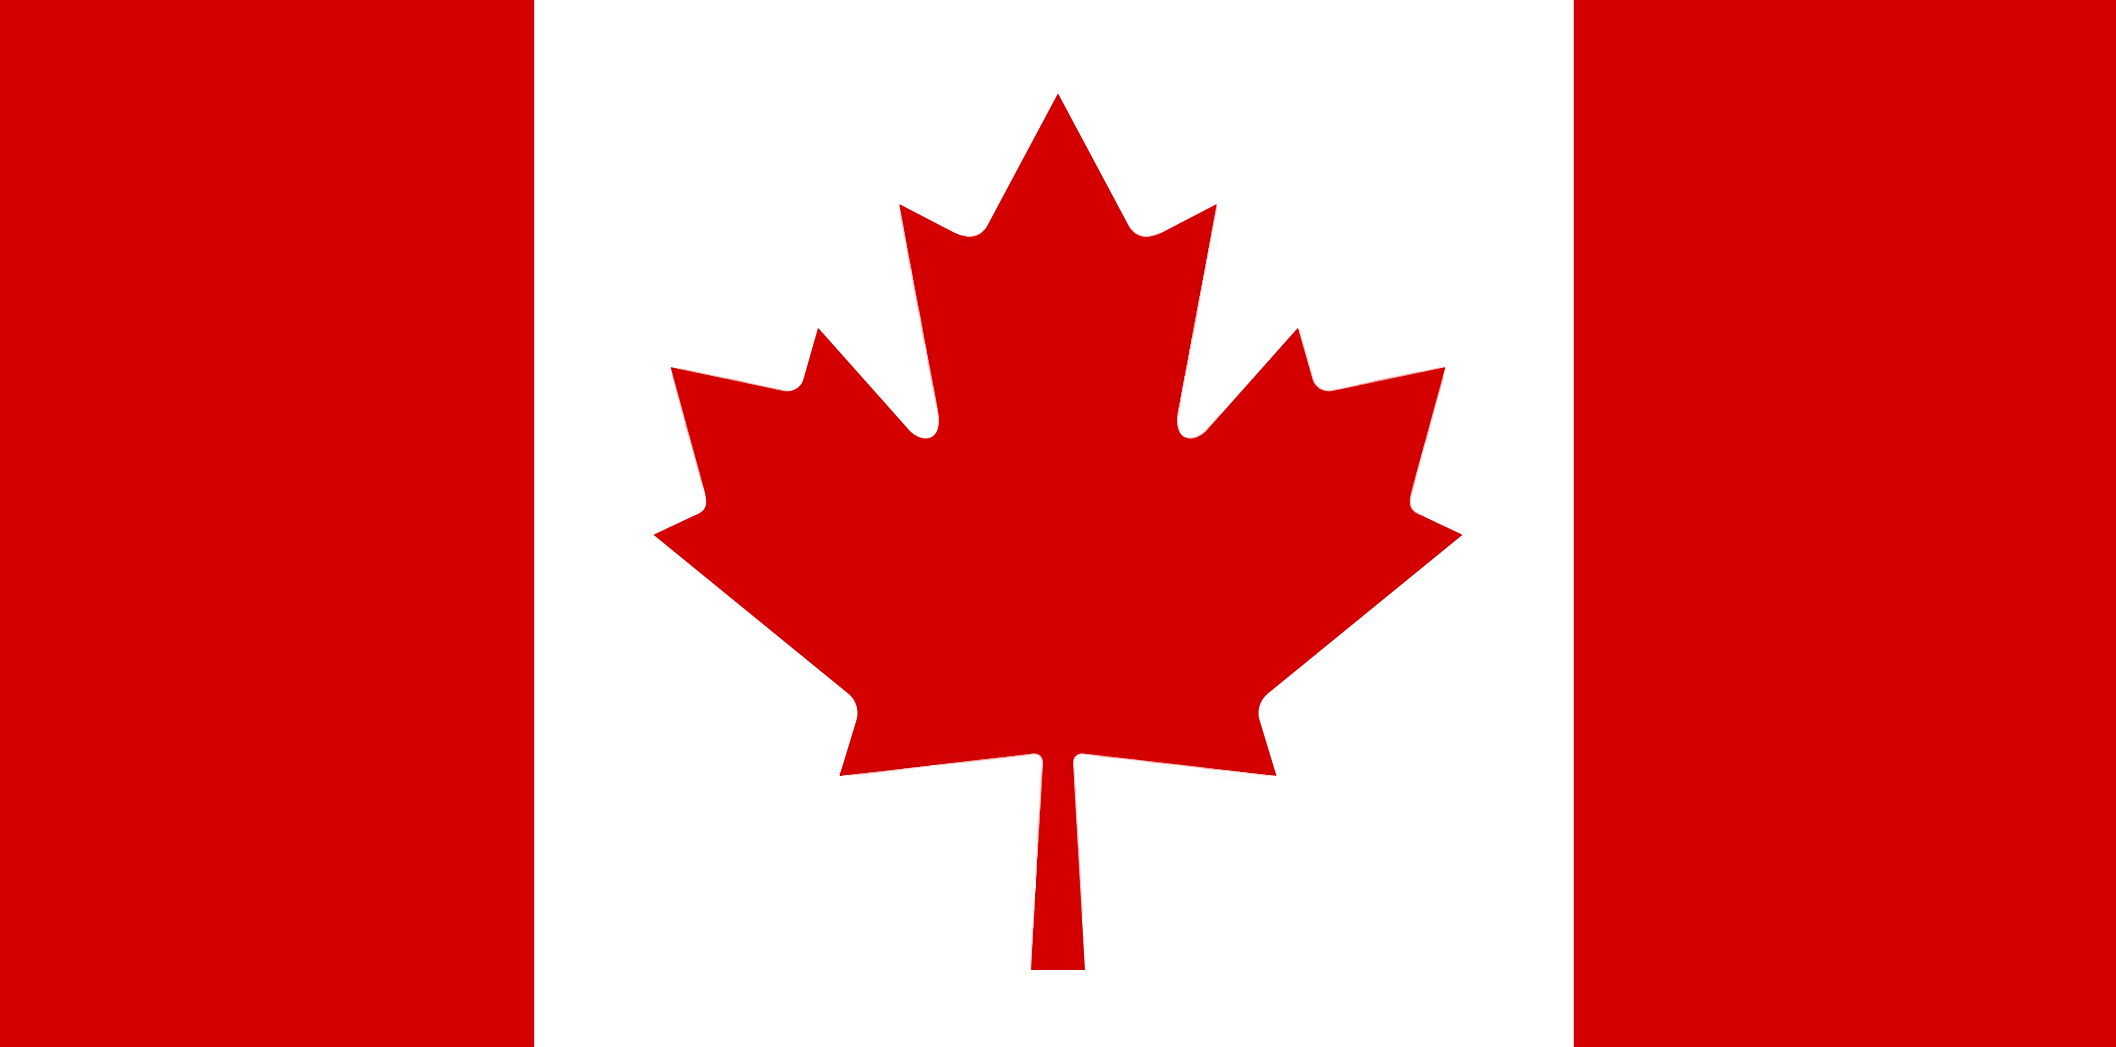 Proudly Canadian - We're proud to say our product was designed right here in Canada.